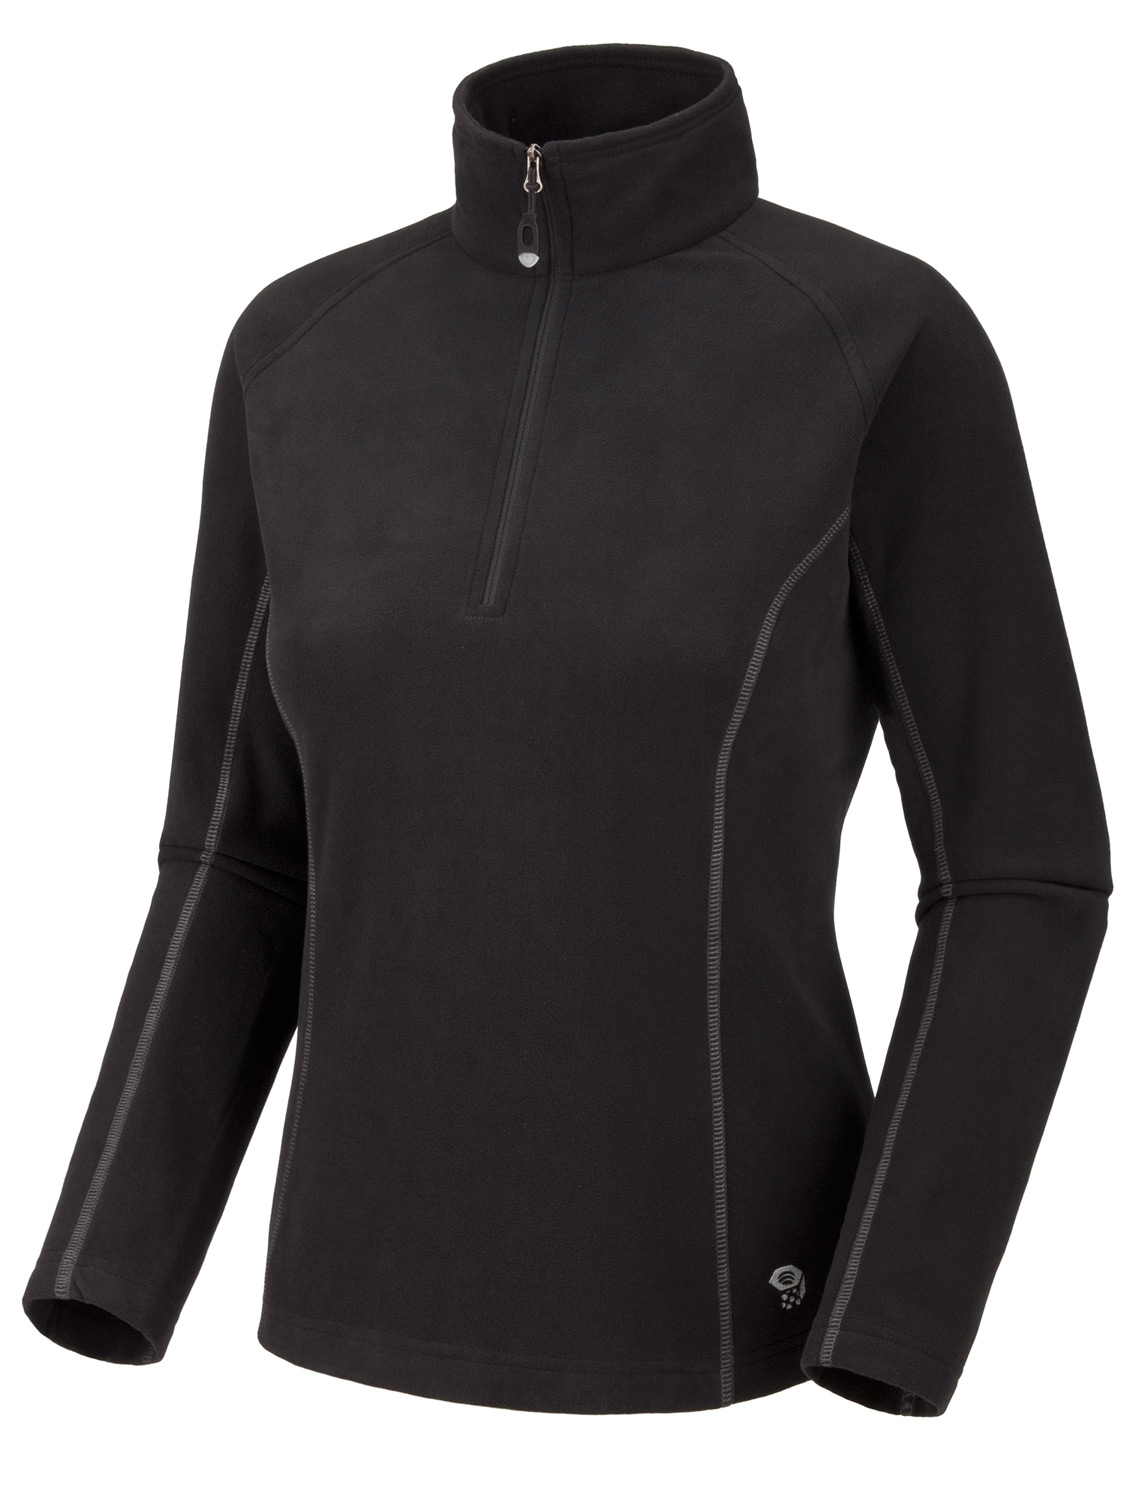 "Key Features of the Mountain Hardwear Microchill Zip T Fleece: High-cut collar with 11"" zip for thermoregulation Flat-lock construction eliminates chafe AVG. WEIGHT: 7 oz; 210 g CENTER BACK LENGTH: 25""; 64 cm FABRIC: body: Velous Micro Fleece (100% polyester) - $54.95"